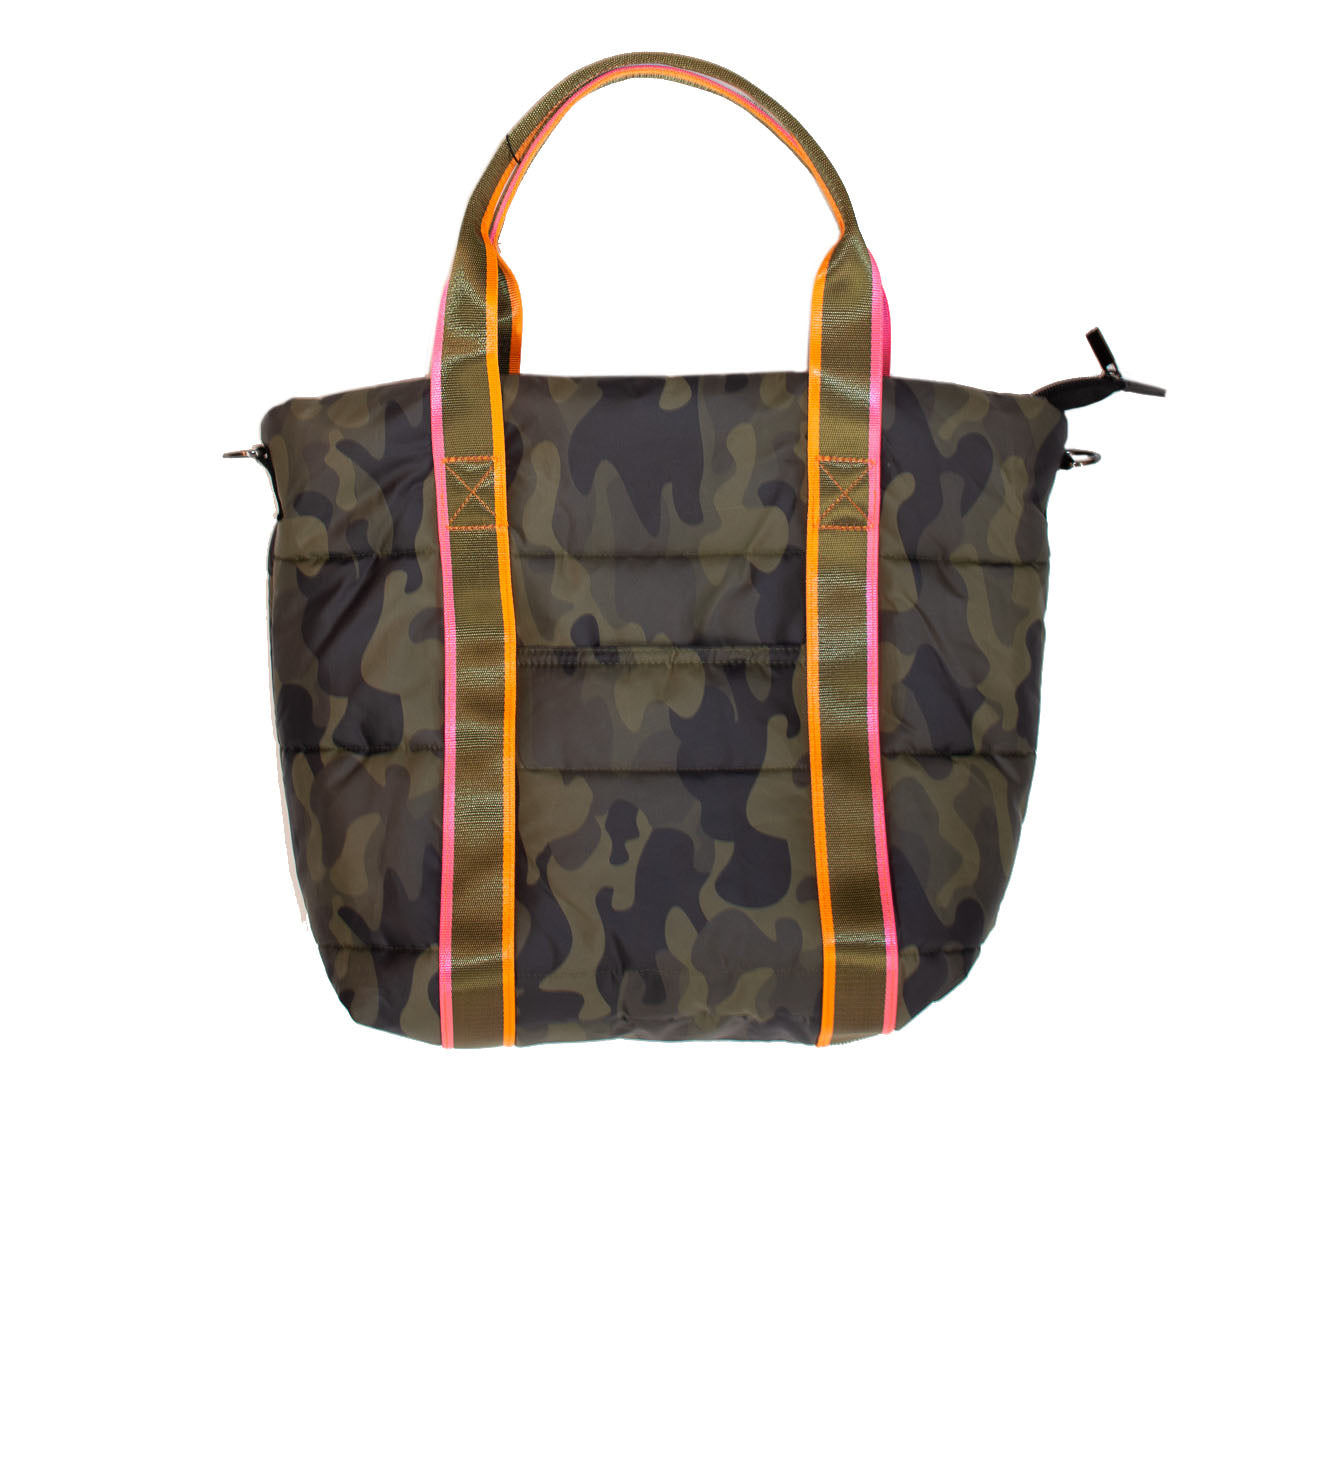 Haute Shore - Jaime Catch Puffer Tote w/Shoulder Strap (CATCH, Green Camo w/Pink)